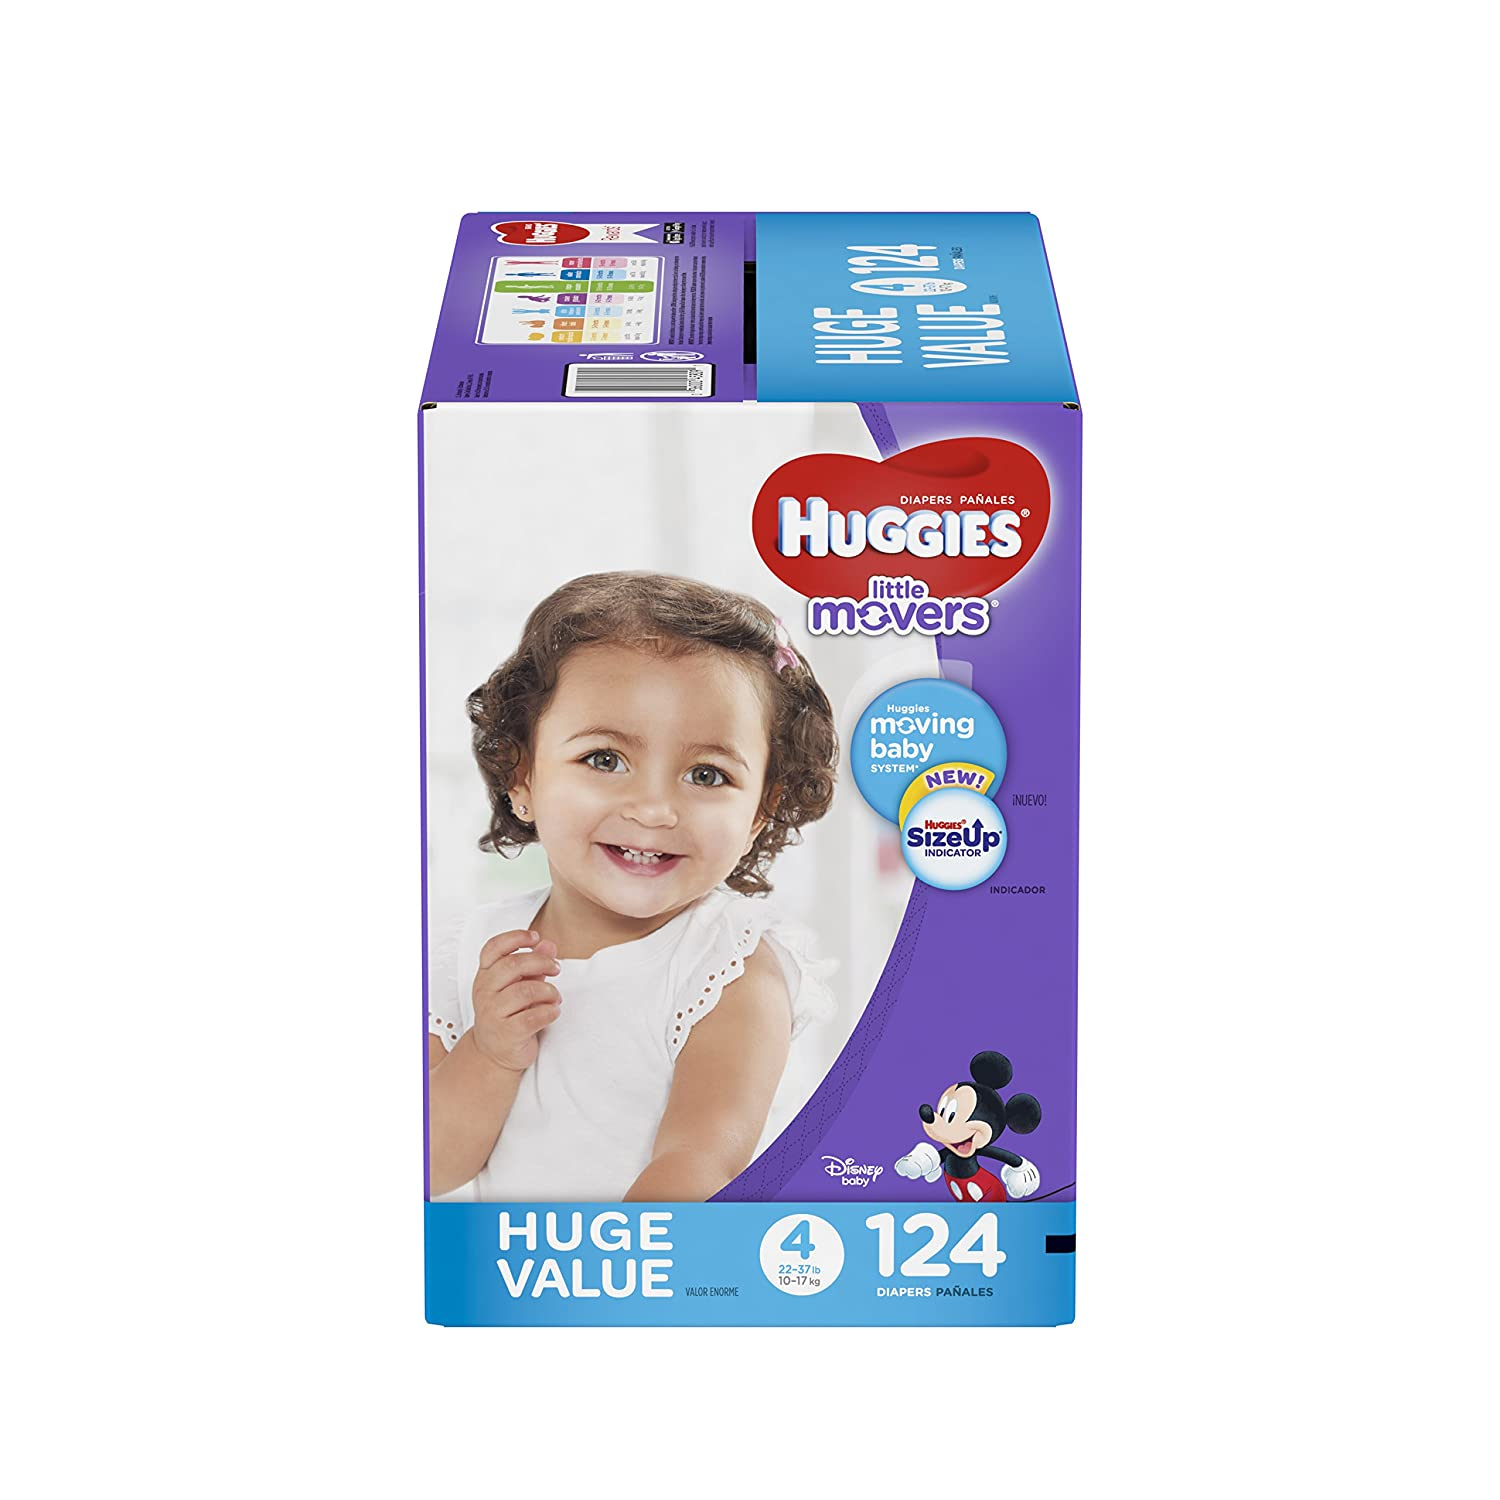 Amazon.com: HUGGIES LITTLE MOVERS Diapers, Size 4 (22-37 lb.), 124 Ct.  (Packaging May Vary), Baby Diapers for Active Babies: Health & Personal Care